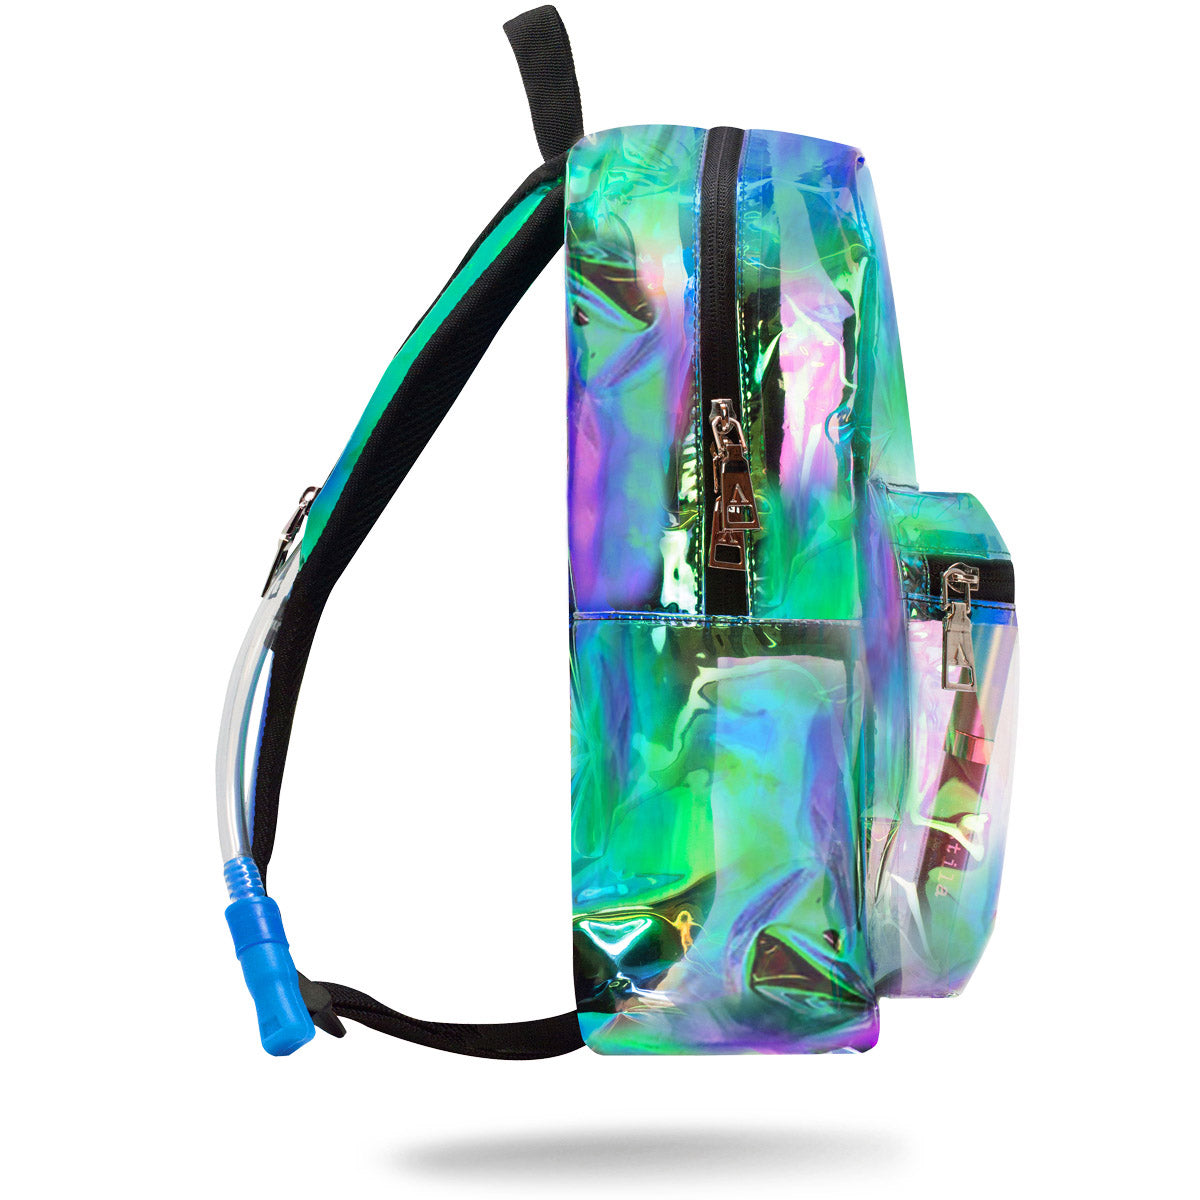 See-through Hydration Pack for music festivals